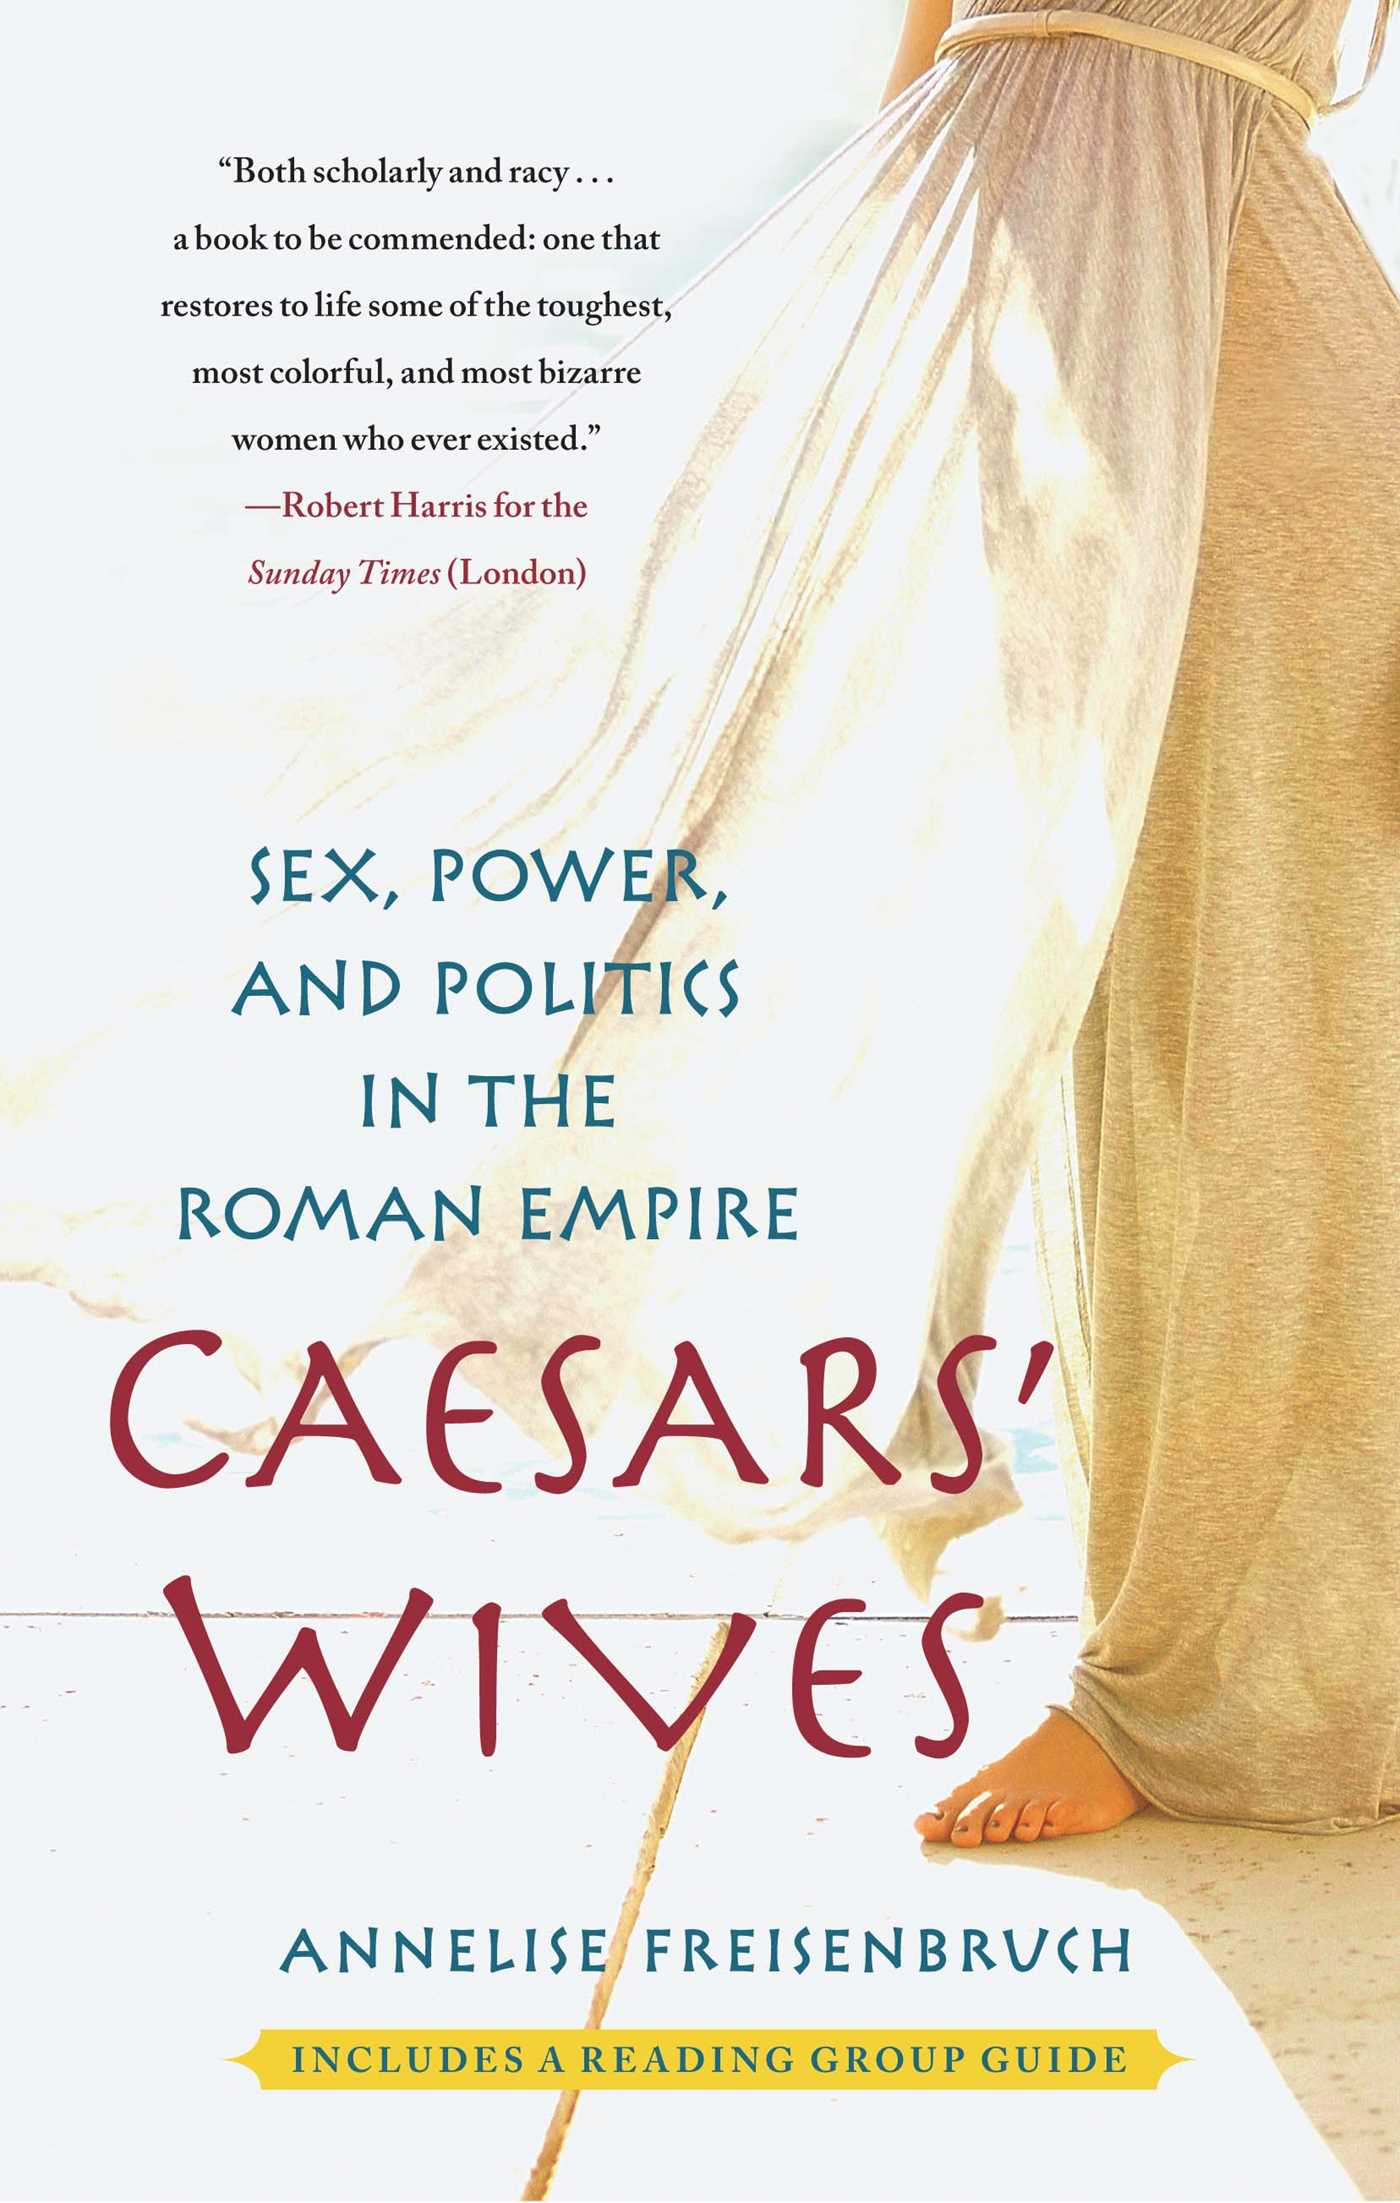 Caesars-wives-9781416583578_hr